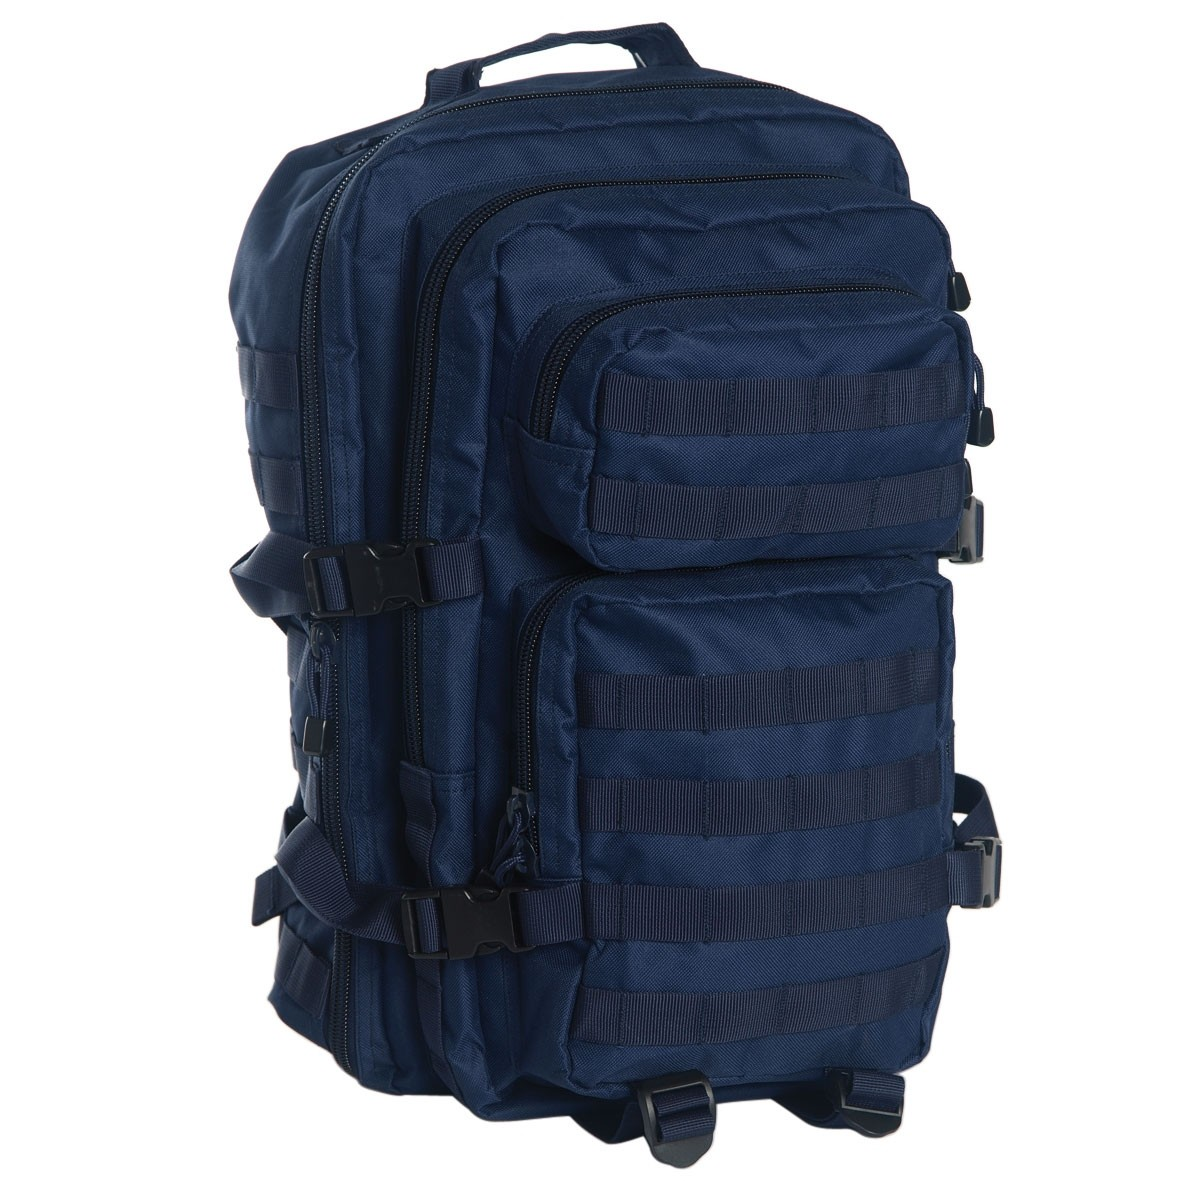 US Assault Pack II, 40 L, blau